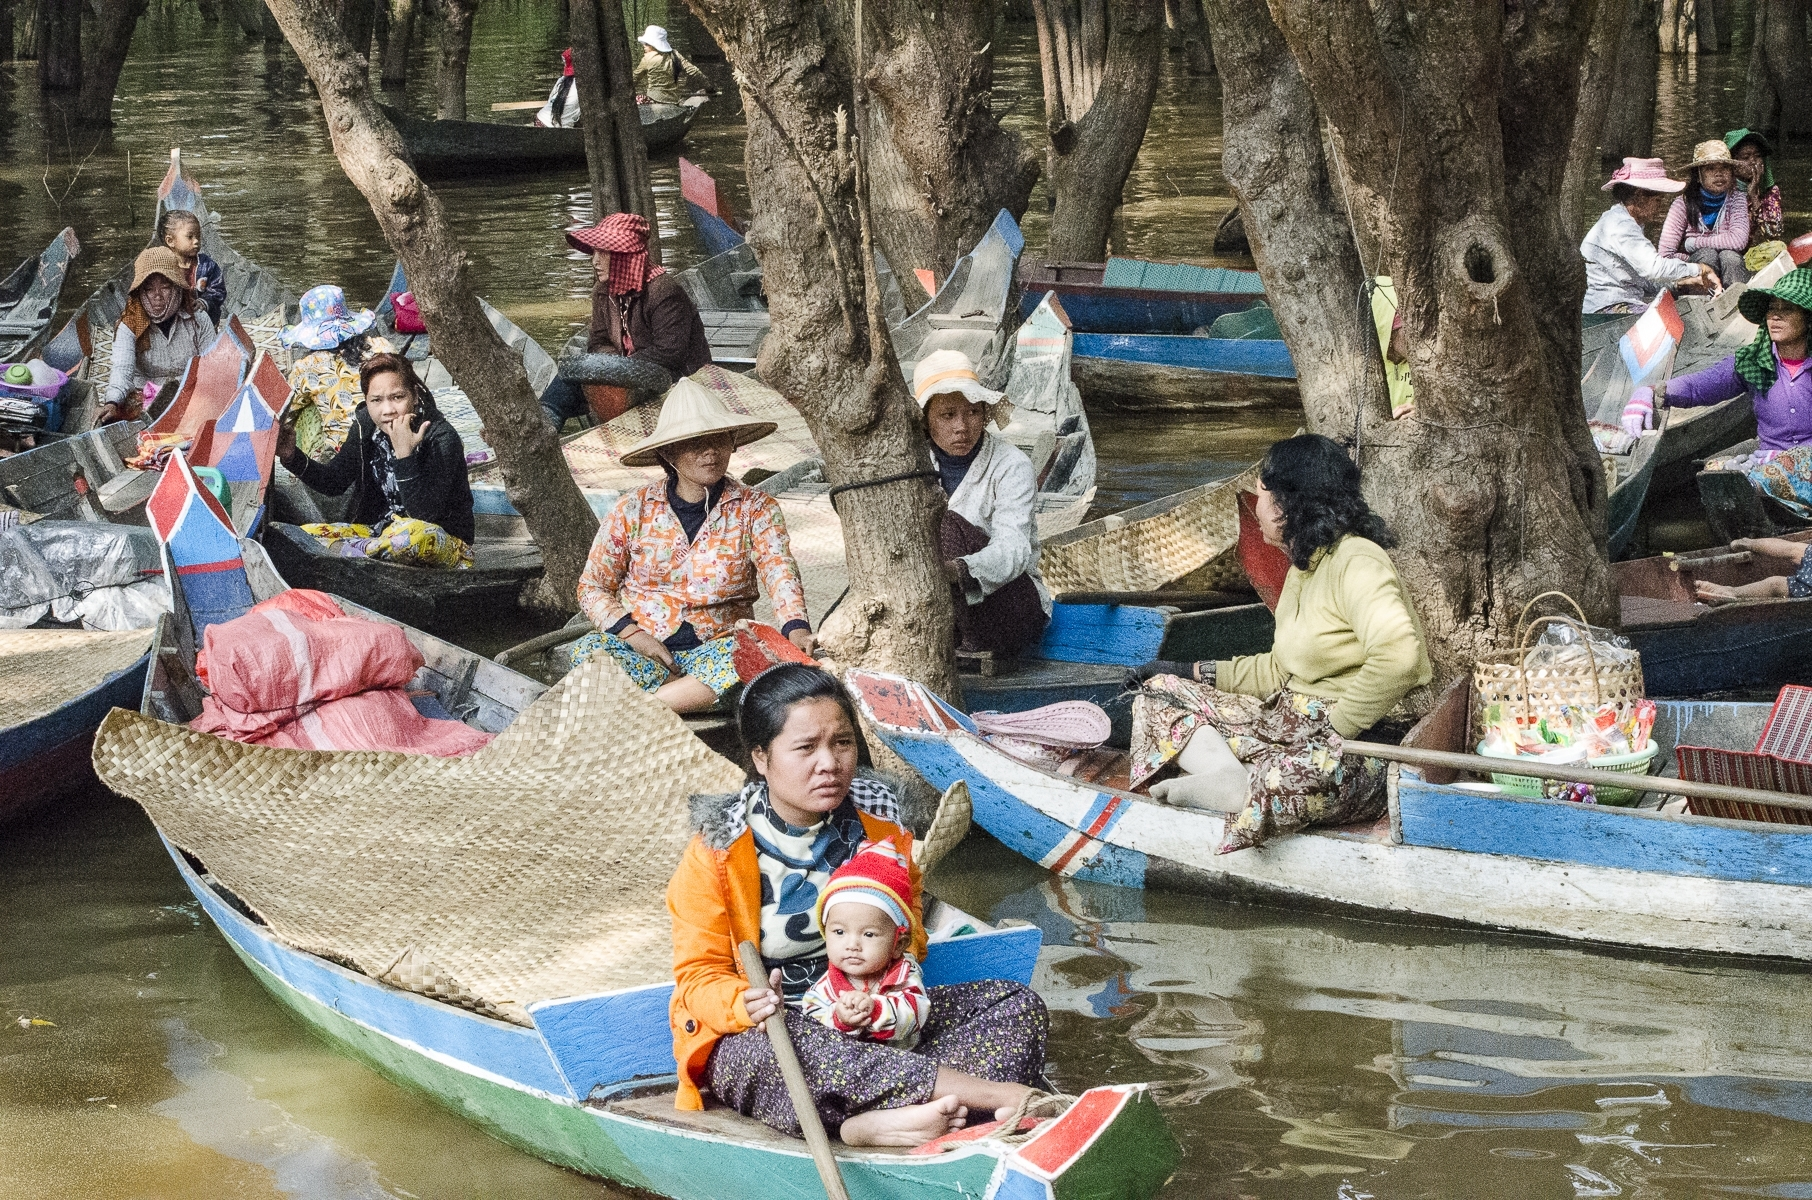 Financially-struggling-women-and-children-offering-tourists-rides-in-Cambodia-near-Tonal-Sap-Lake-JB-1-Place-by-Debbie-Bergvall-CC